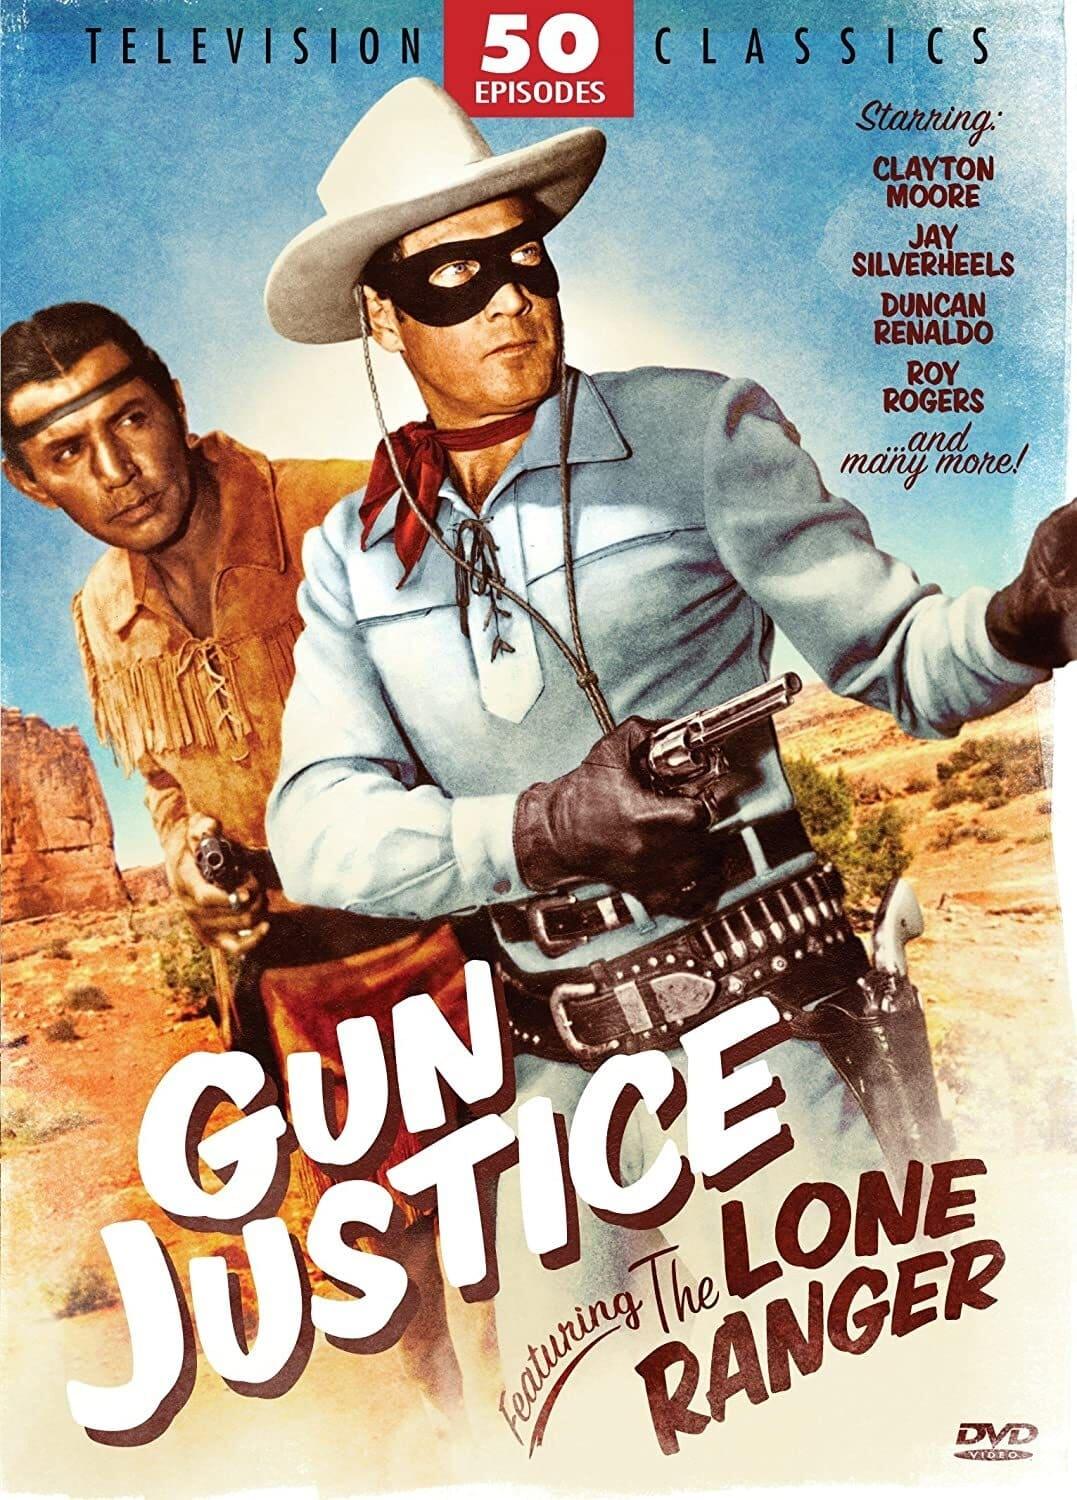 Gun Justice Featuring The Loan Ranger on FREECABLE TV